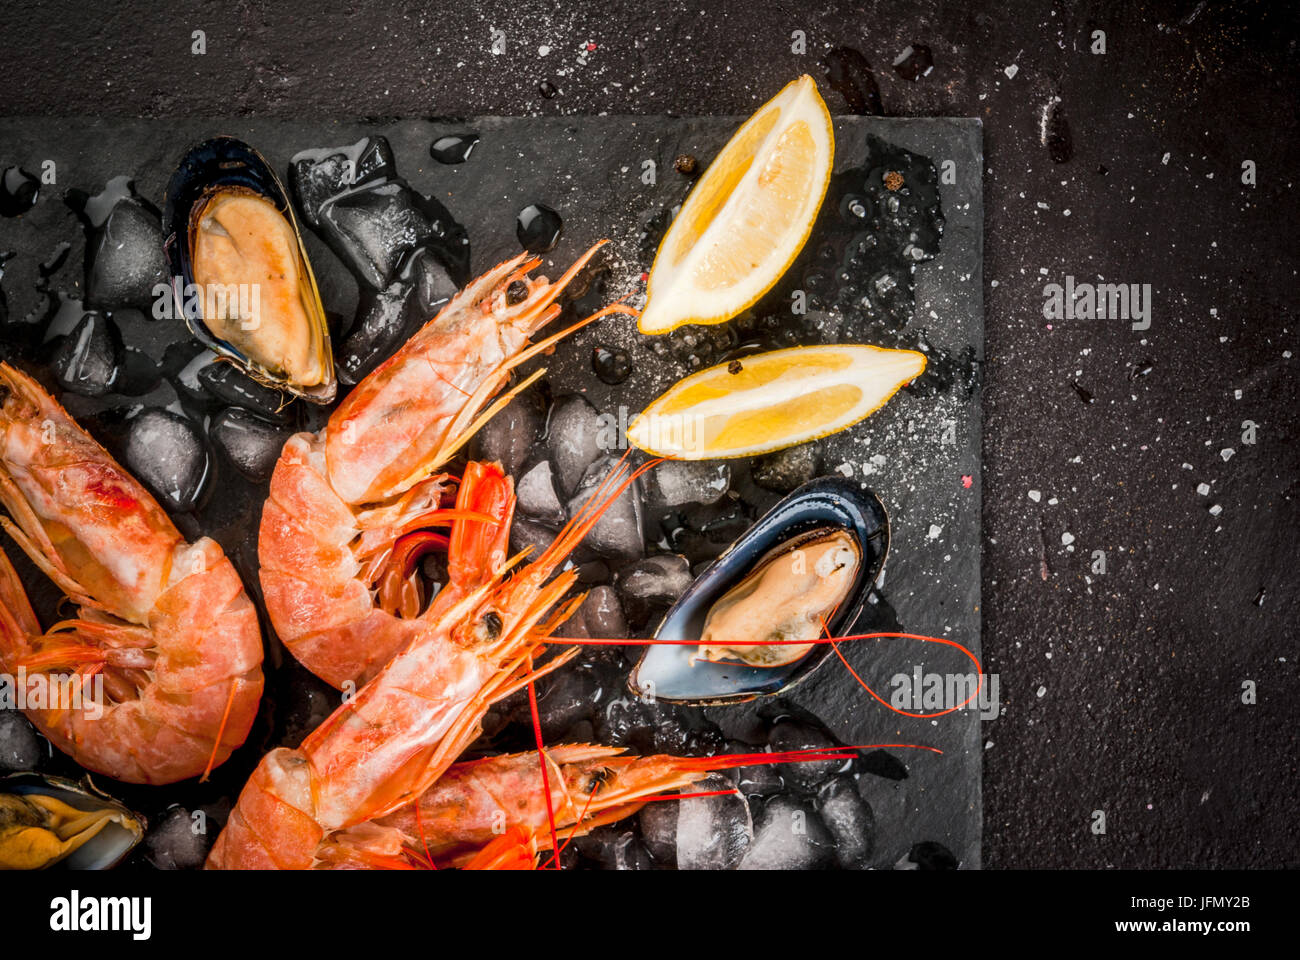 Prepared for cooking dinner seafood - shrimp and mussels on ice, on a cutting slate board, with lemon and seasonings. - Stock Image